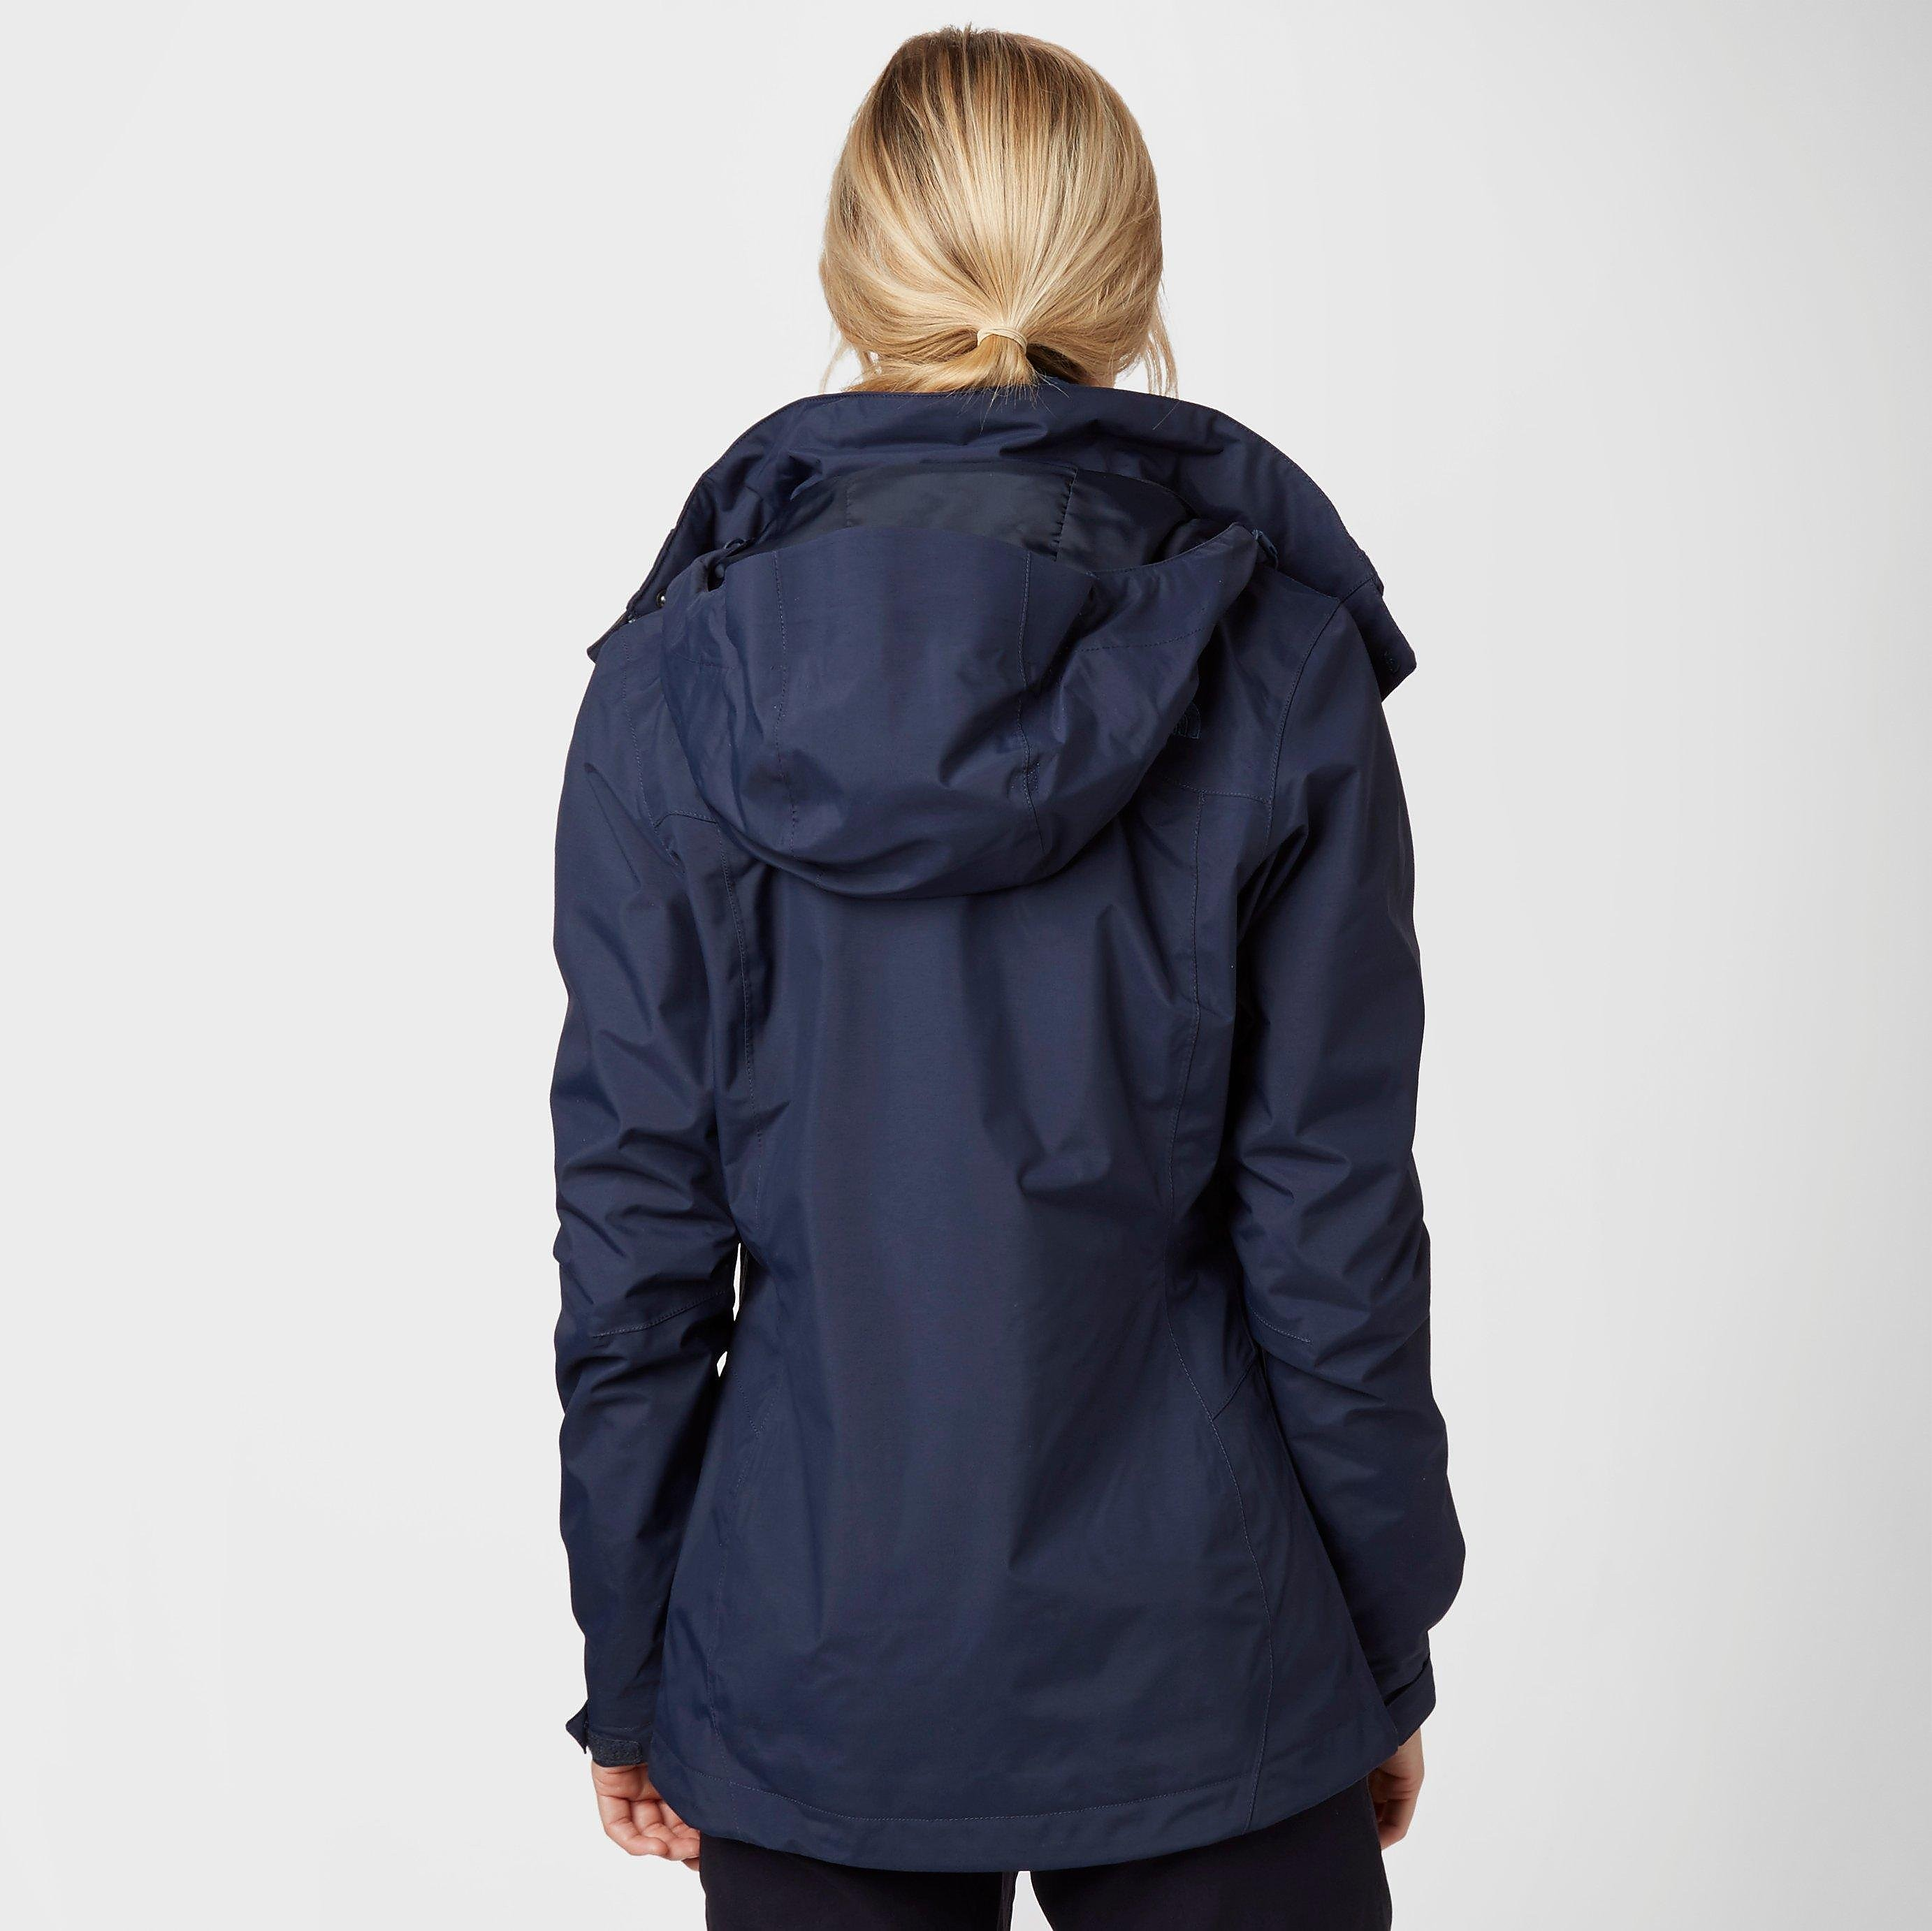 The North Face Evolution II Triclimate 3-in-1 Women's Jacket